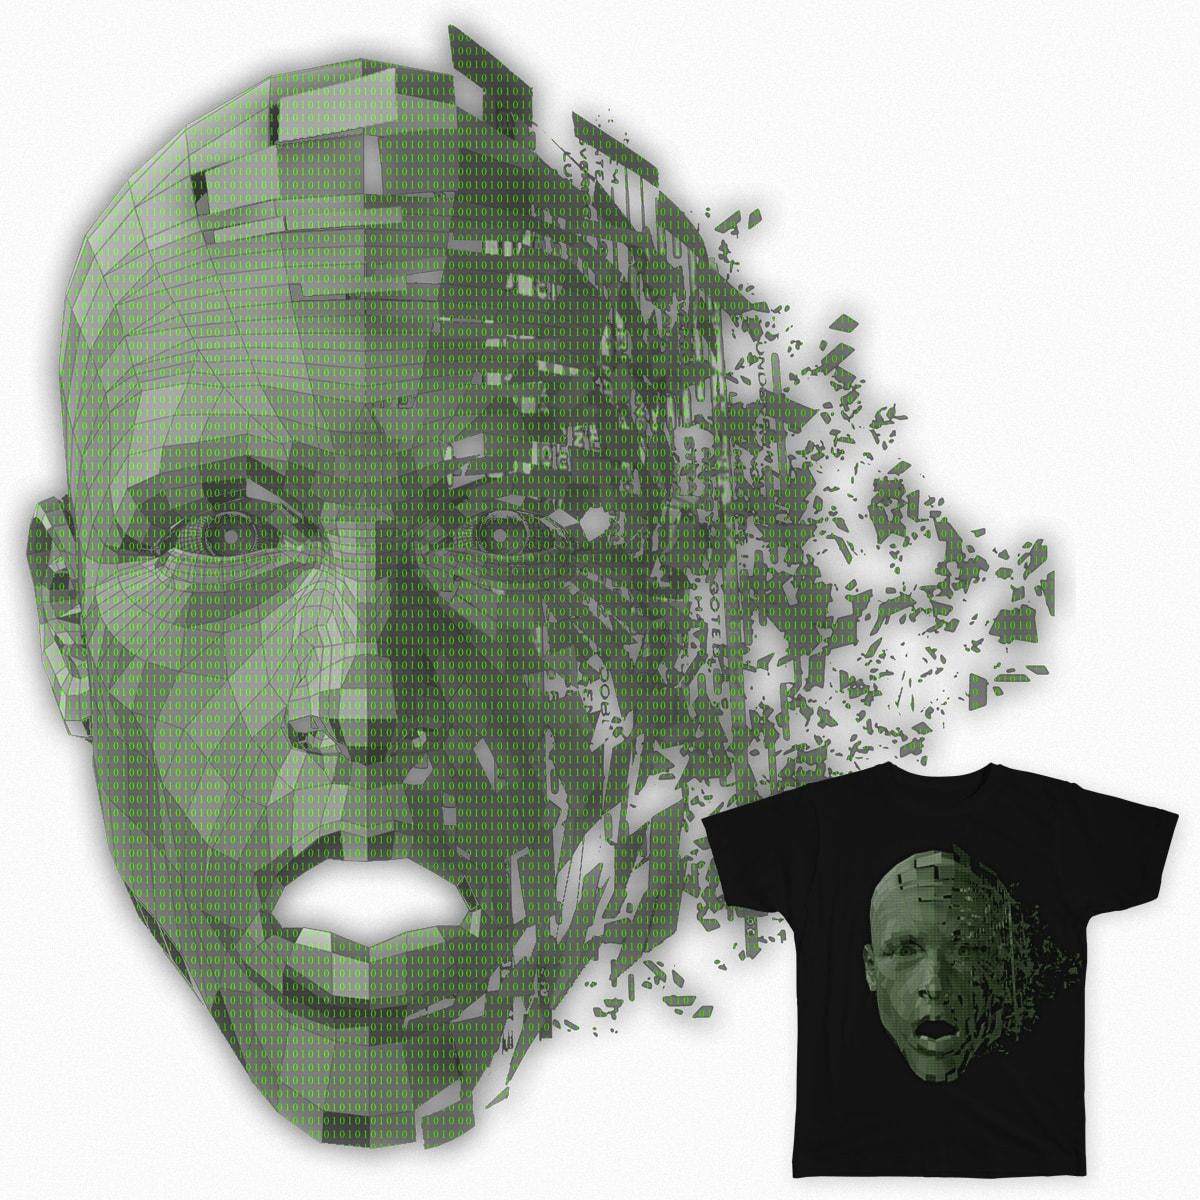 Collaborating Face by asifasghar1234 on Threadless